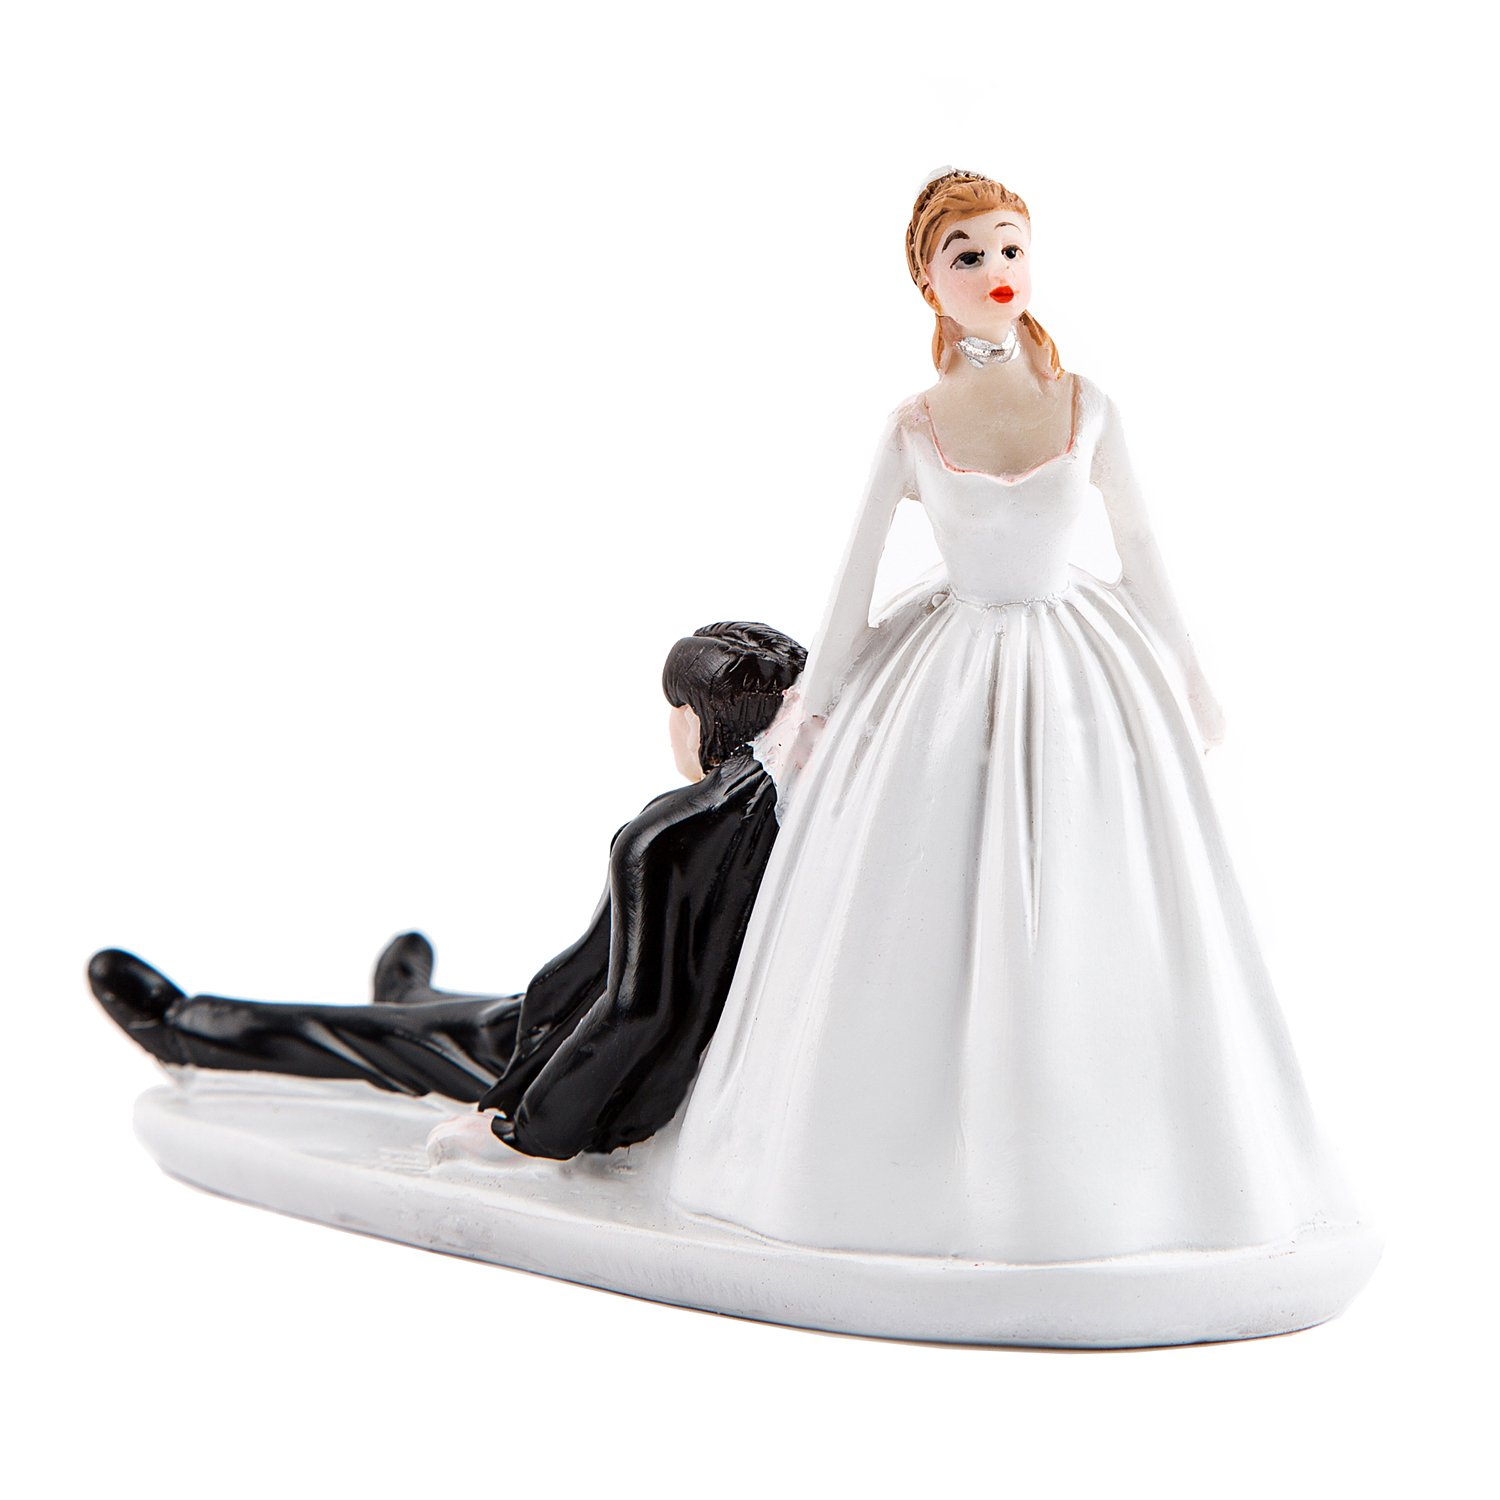 humorous wedding cake toppers bride and groom and groom wedding cake topper the mad in 16204